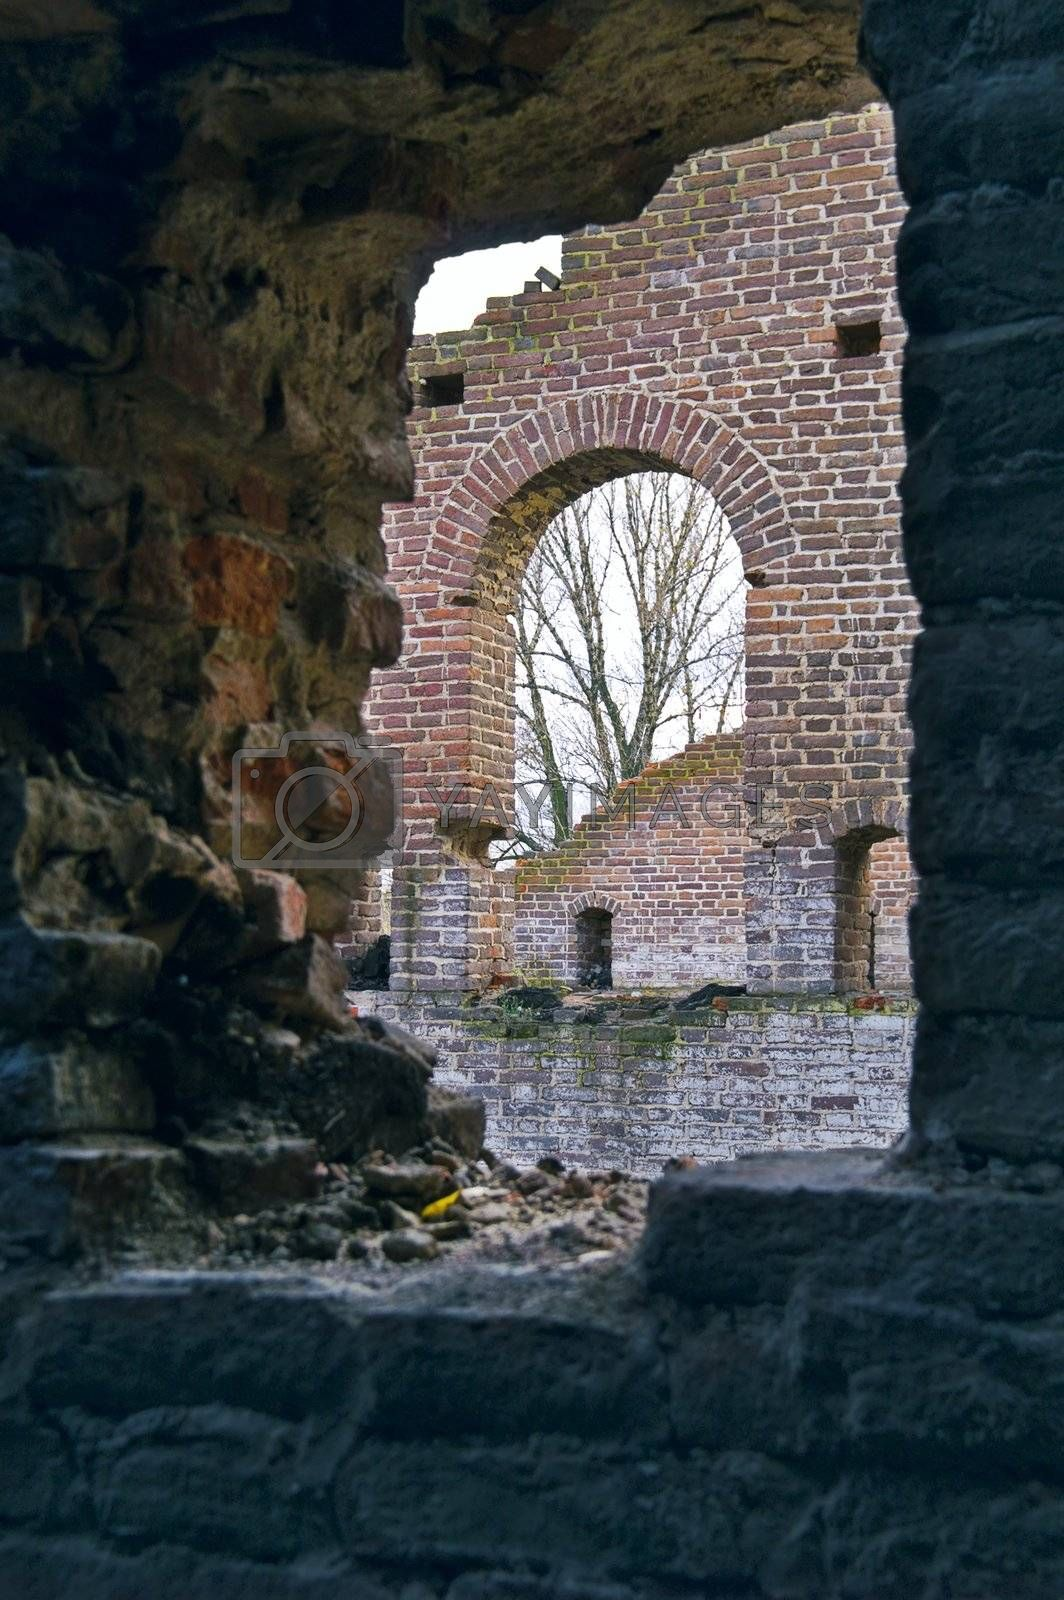 Ruins of Ancient Buildings on the New Holland Island in Saint Petersburg, Russia.